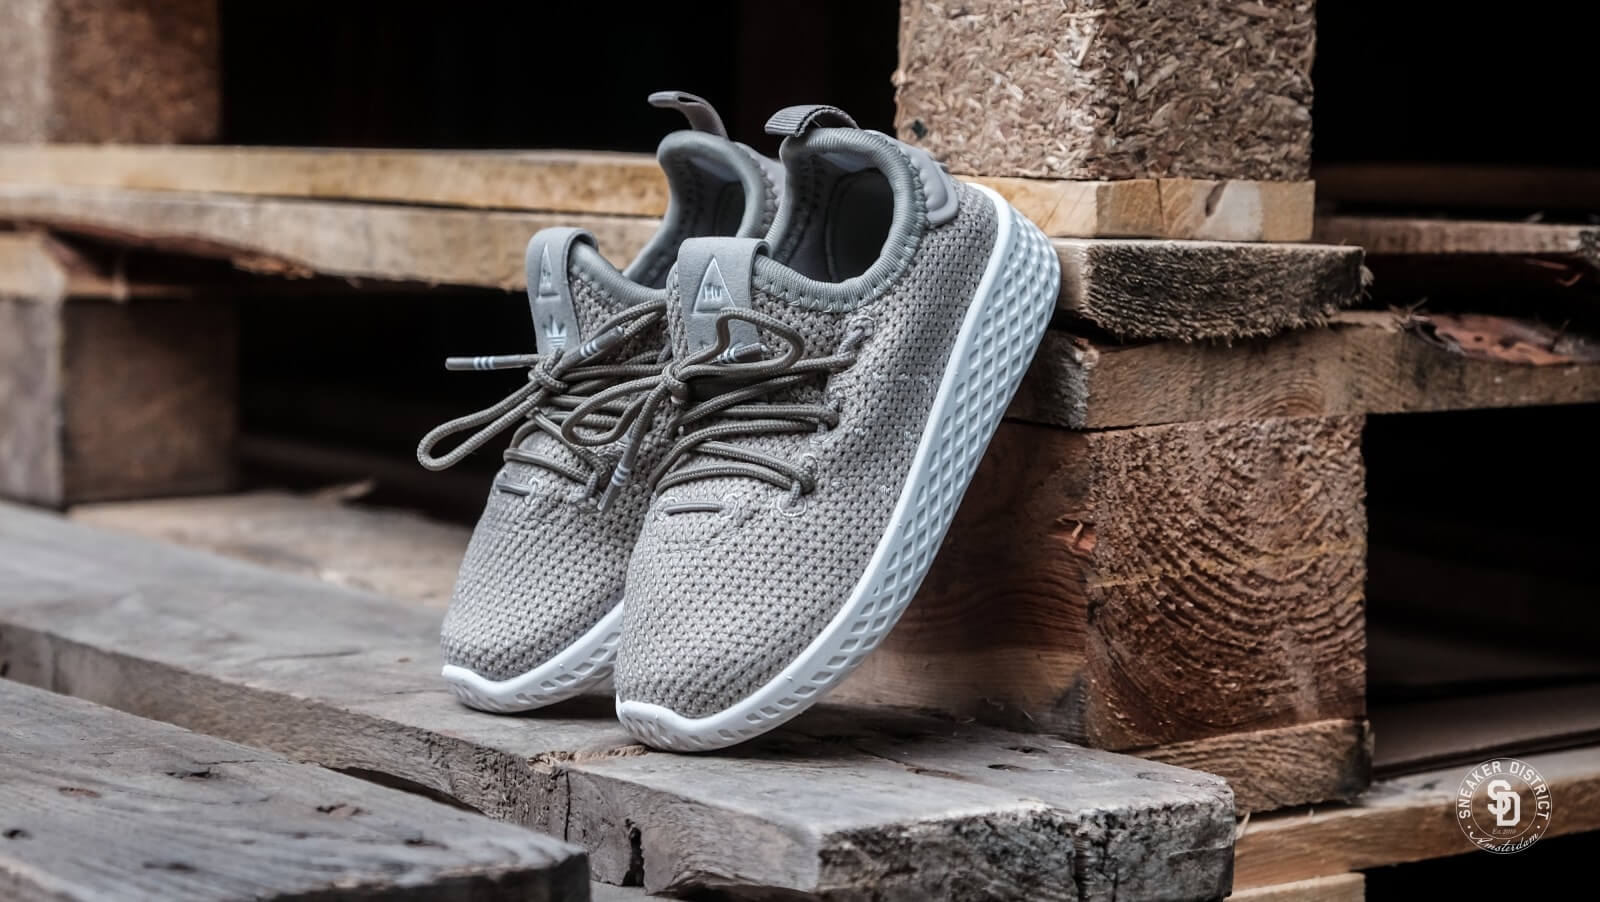 16b811ff326a9 ... bali tempel kuta microfoon tüv gert stem opnemen online Adidas dose  swift fog lamp fits on go plus Pharrell Williams Tennis HU Tech Beige Chalk  White